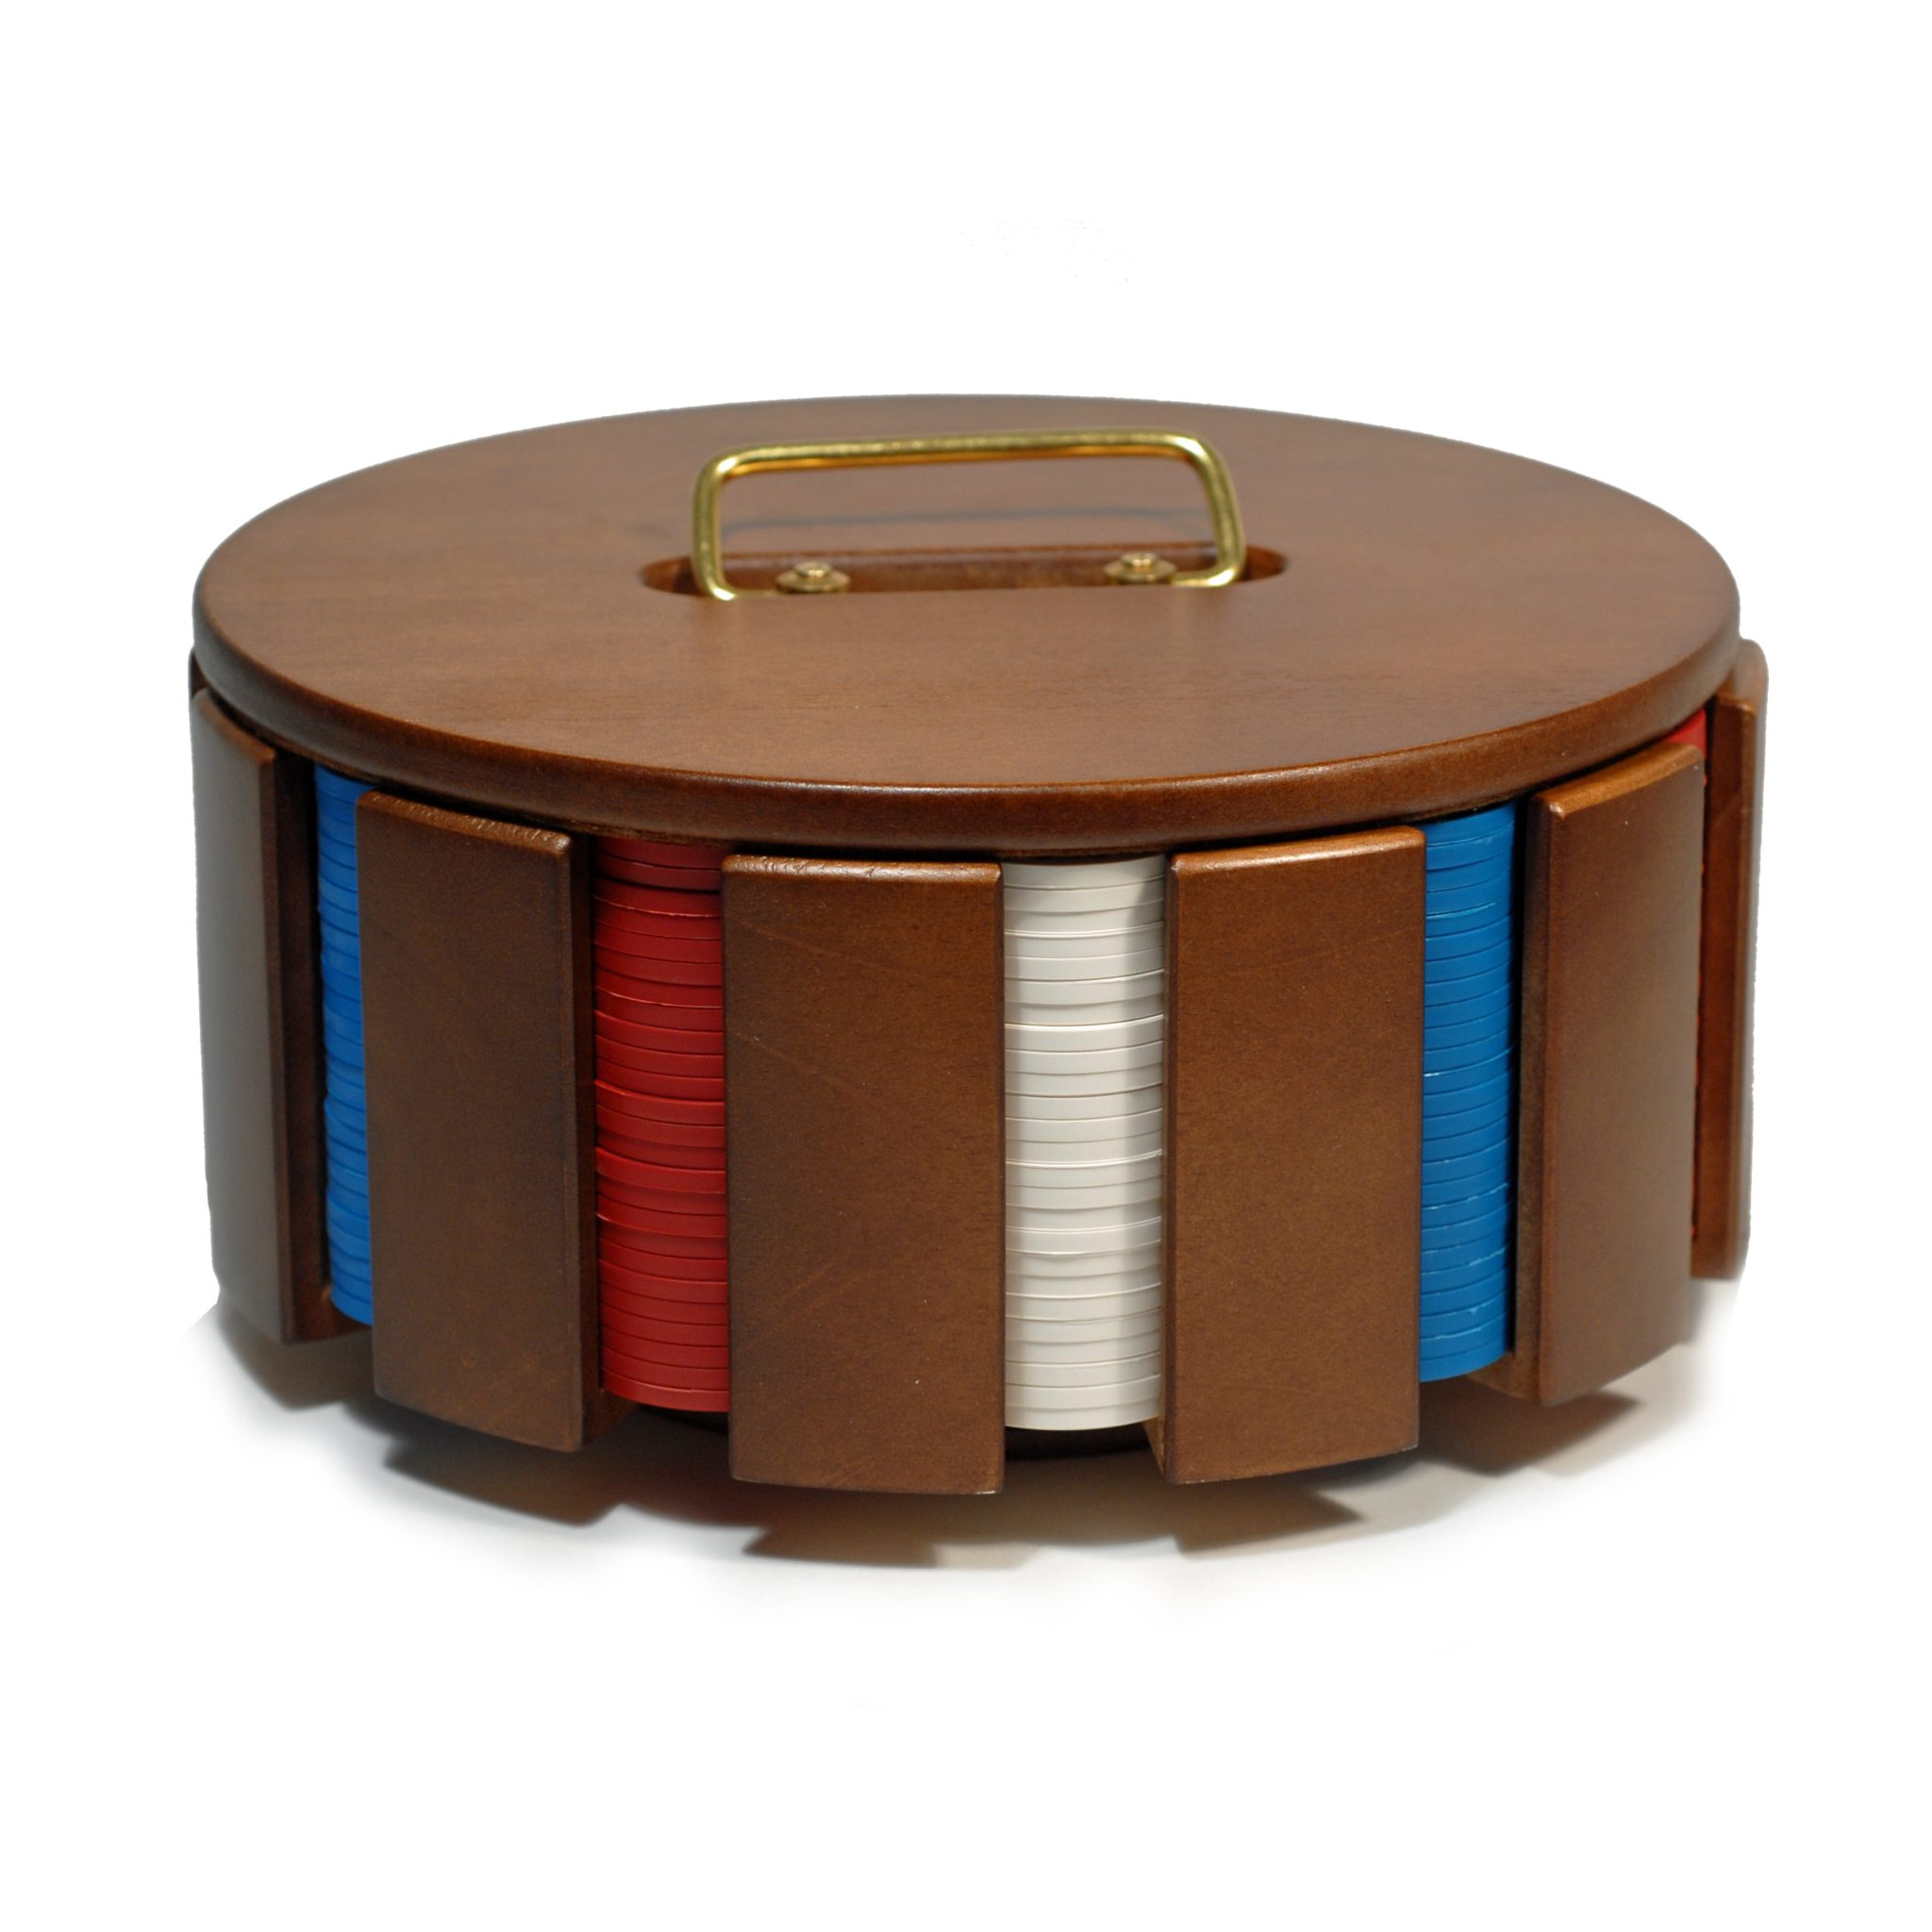 The Executive 300 Poker Set u2013 Wood Expressions